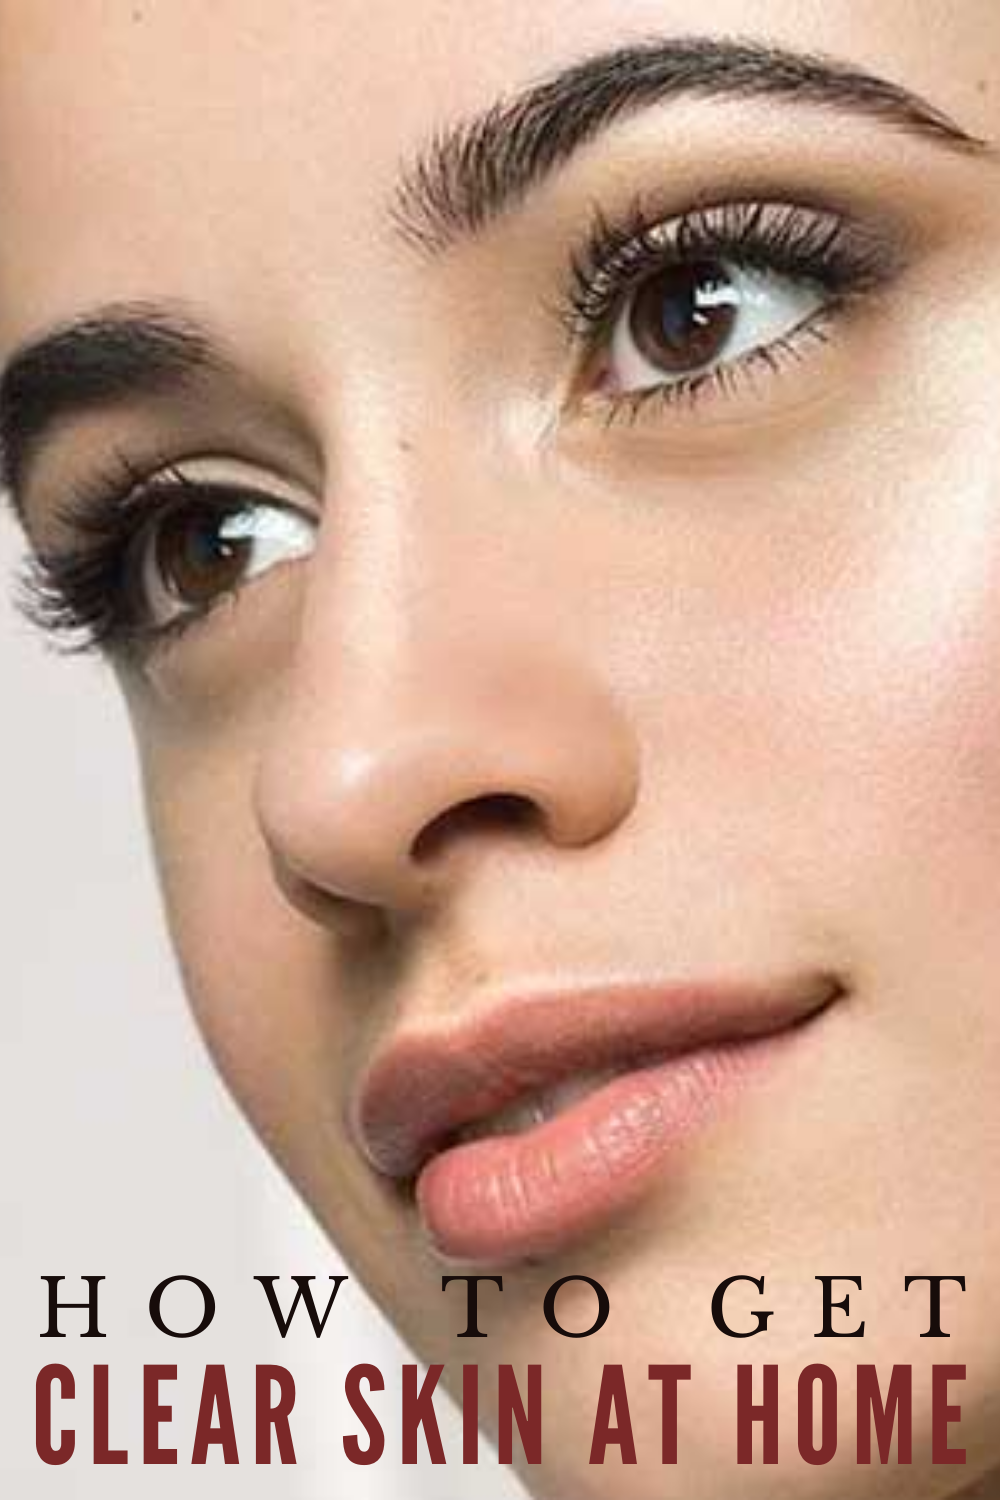 Fastest Tips To Get Clear Skin At Home: Do Not Miss Them!